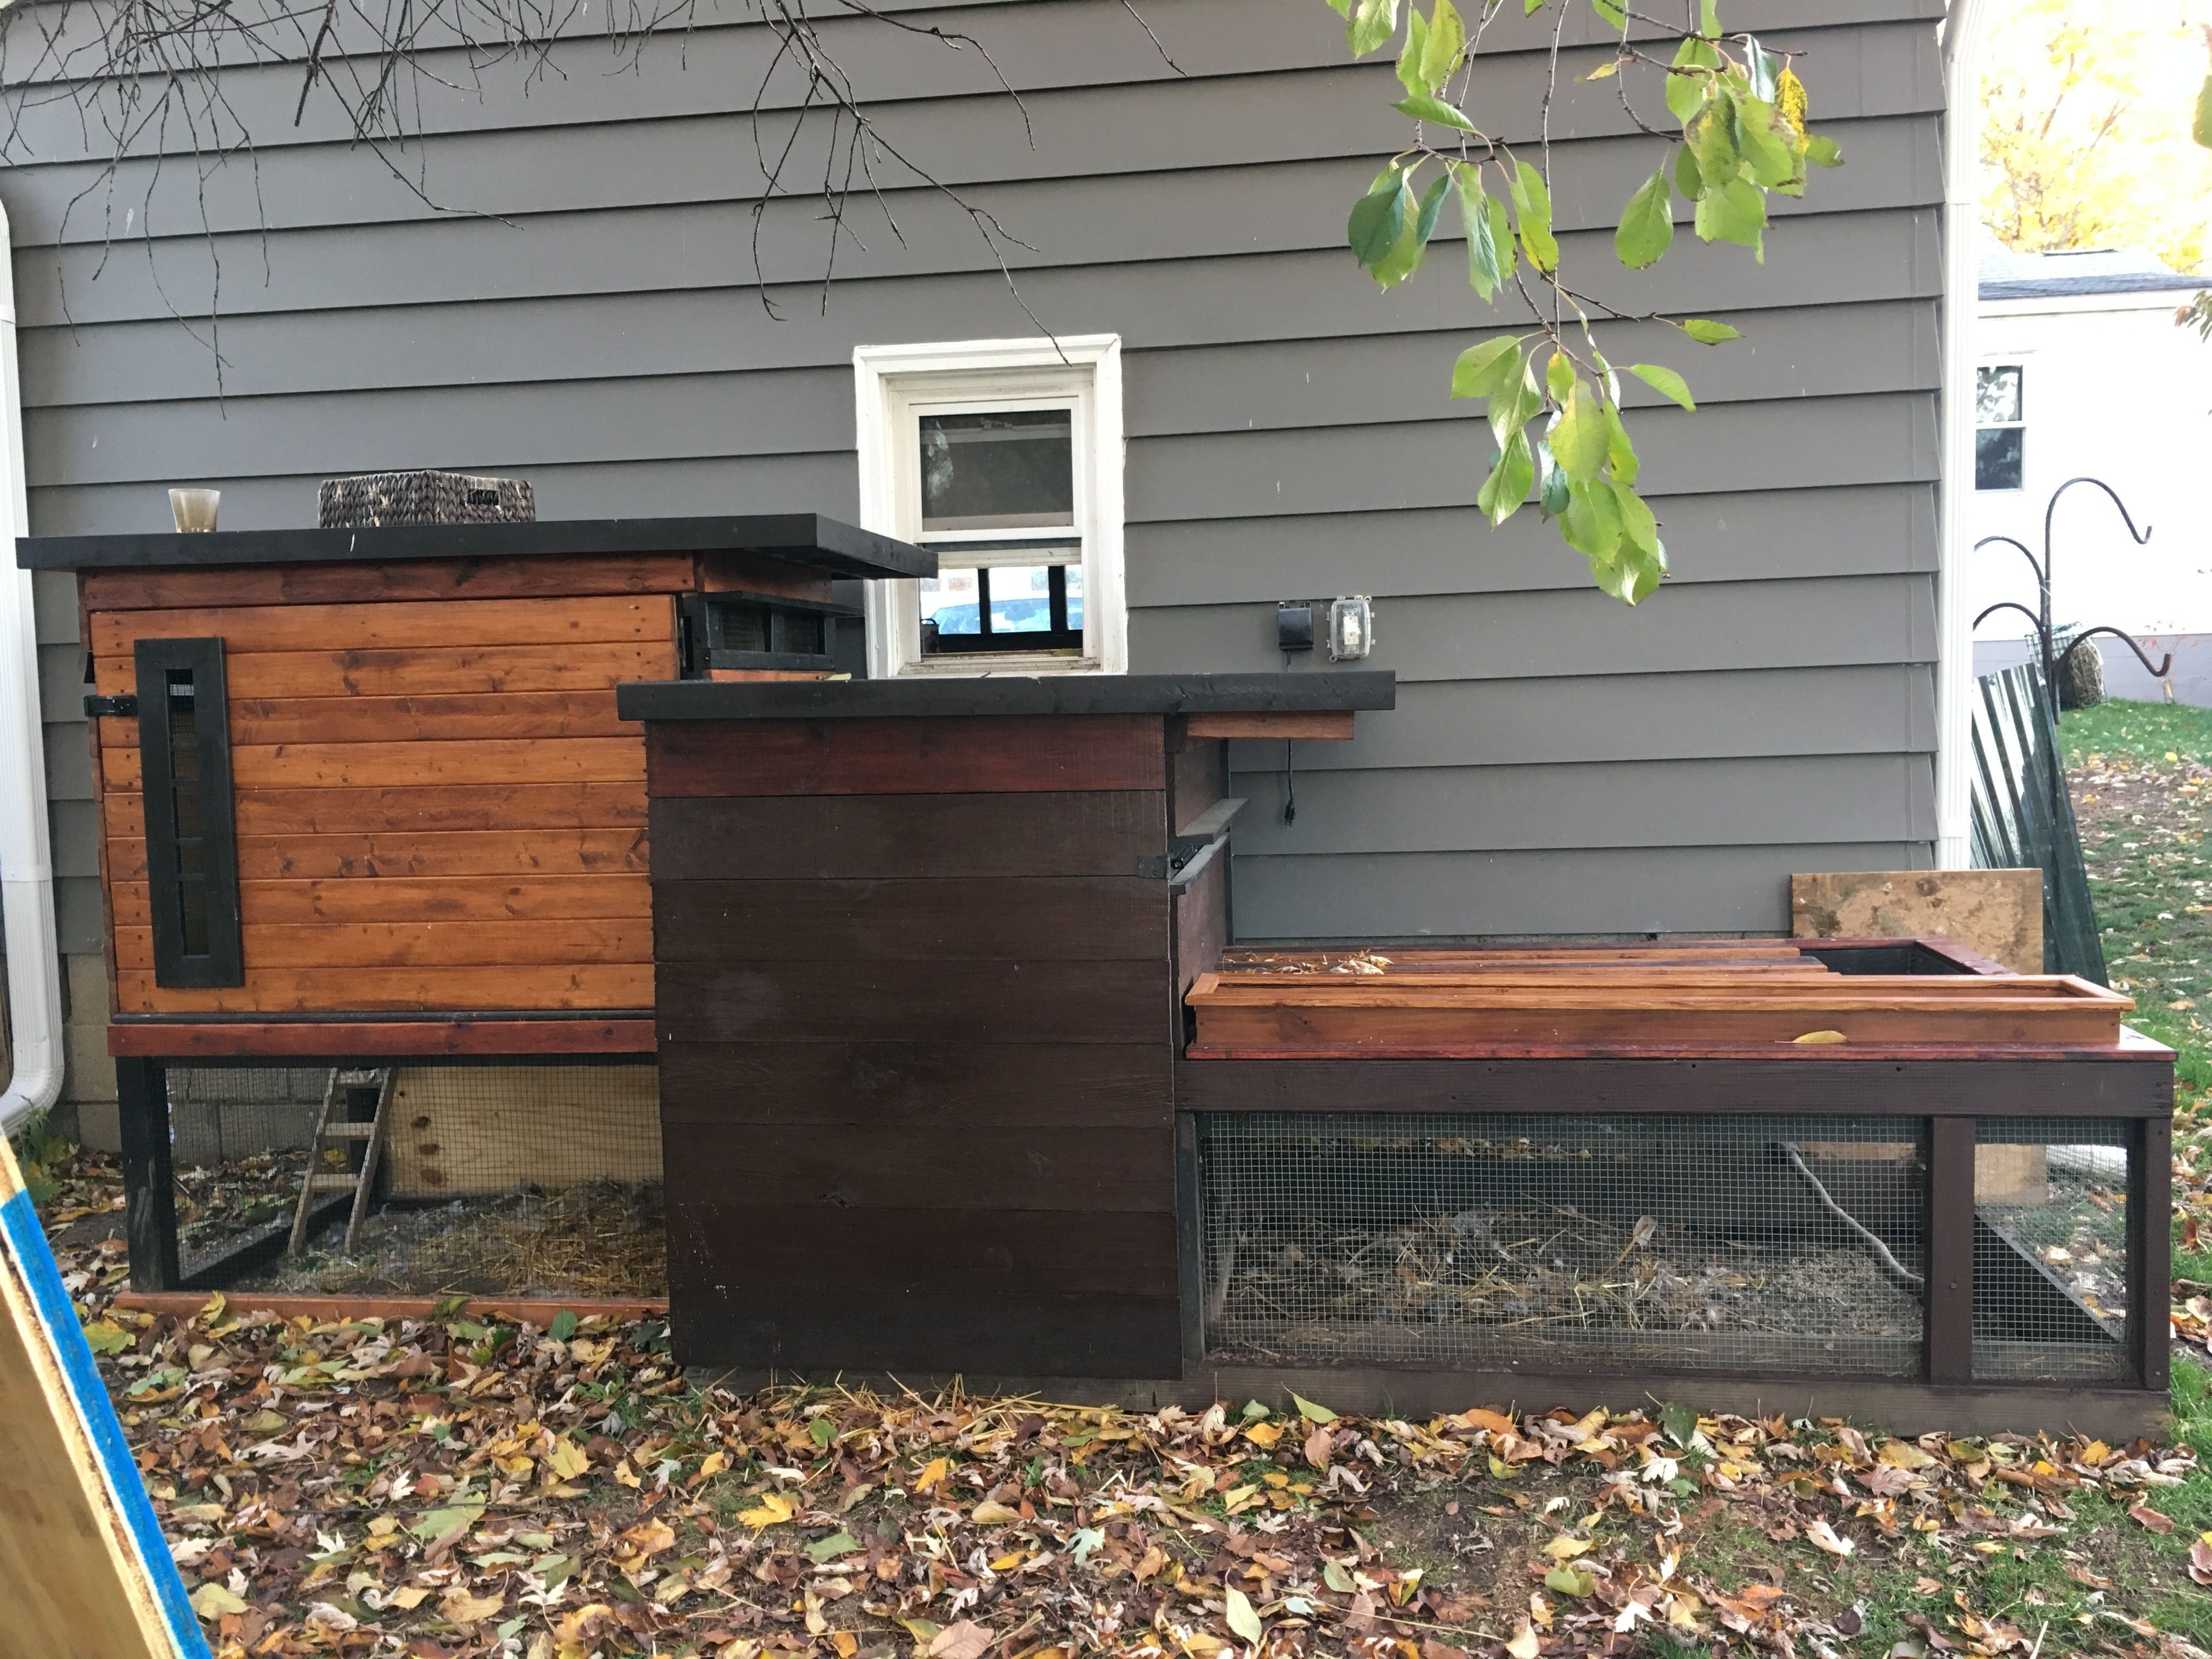 Double Mid Century Modern Chicken Coop with Planter